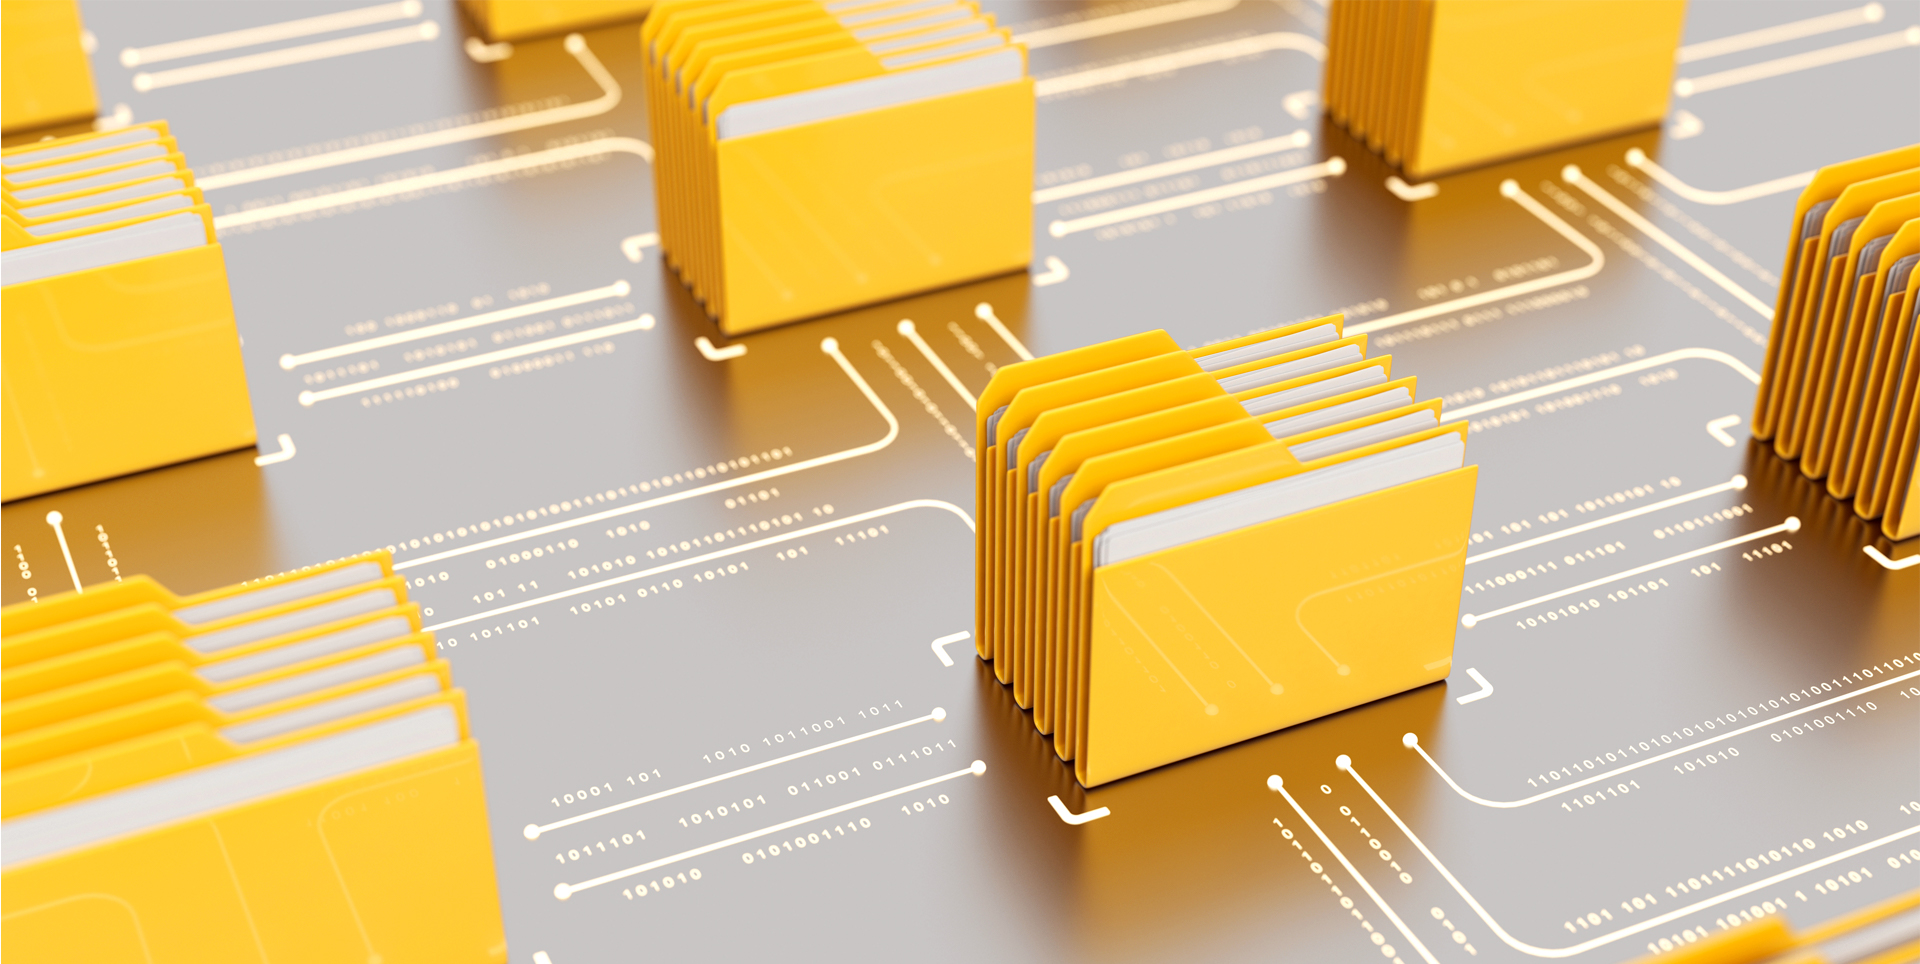 Drawing of yellow computer folders connected by lines of data.